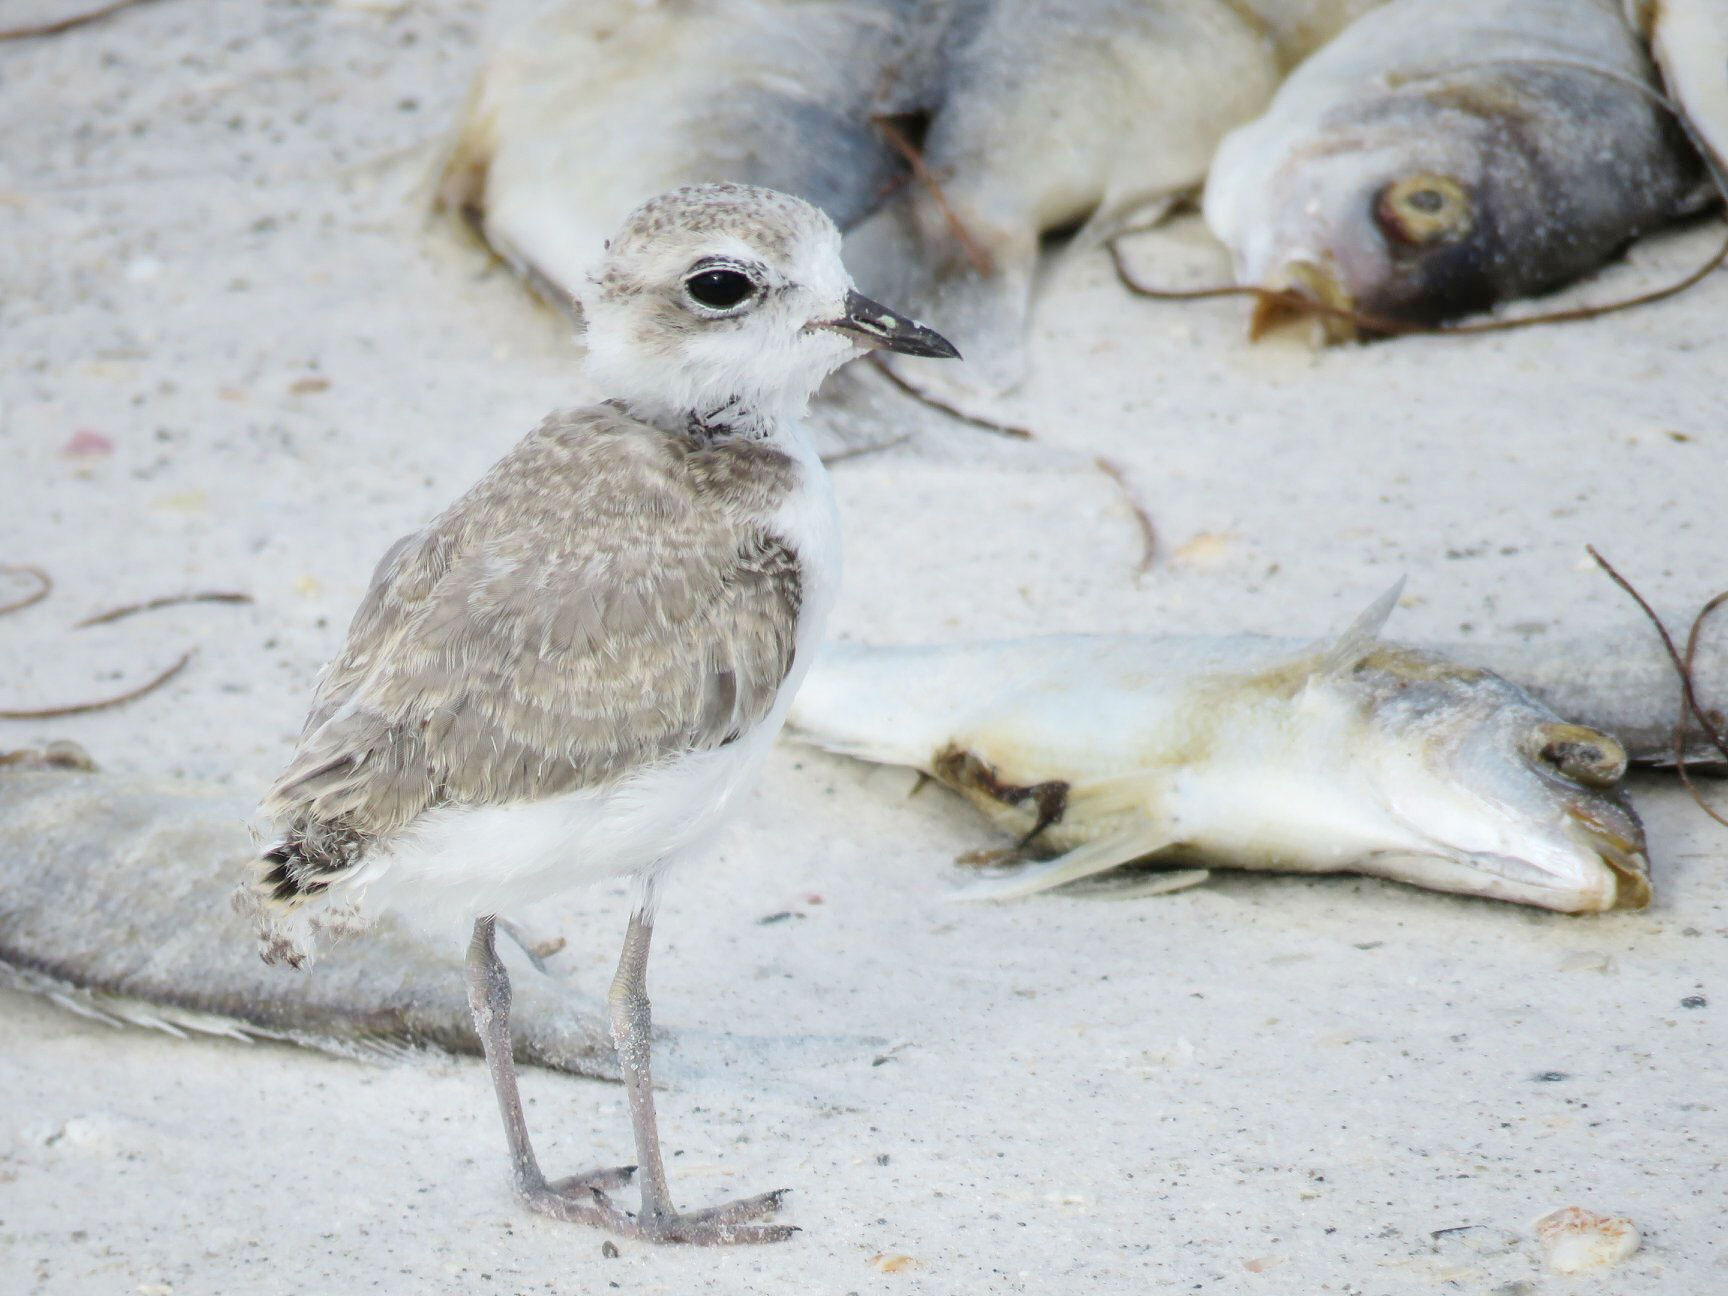 Out of 14 hatchlings, only one Snowy Plover chick successfully fledged on Longboat Island this year. This chick's mother was found dead in September, likely from red tide poisoning. Kylie Wilson